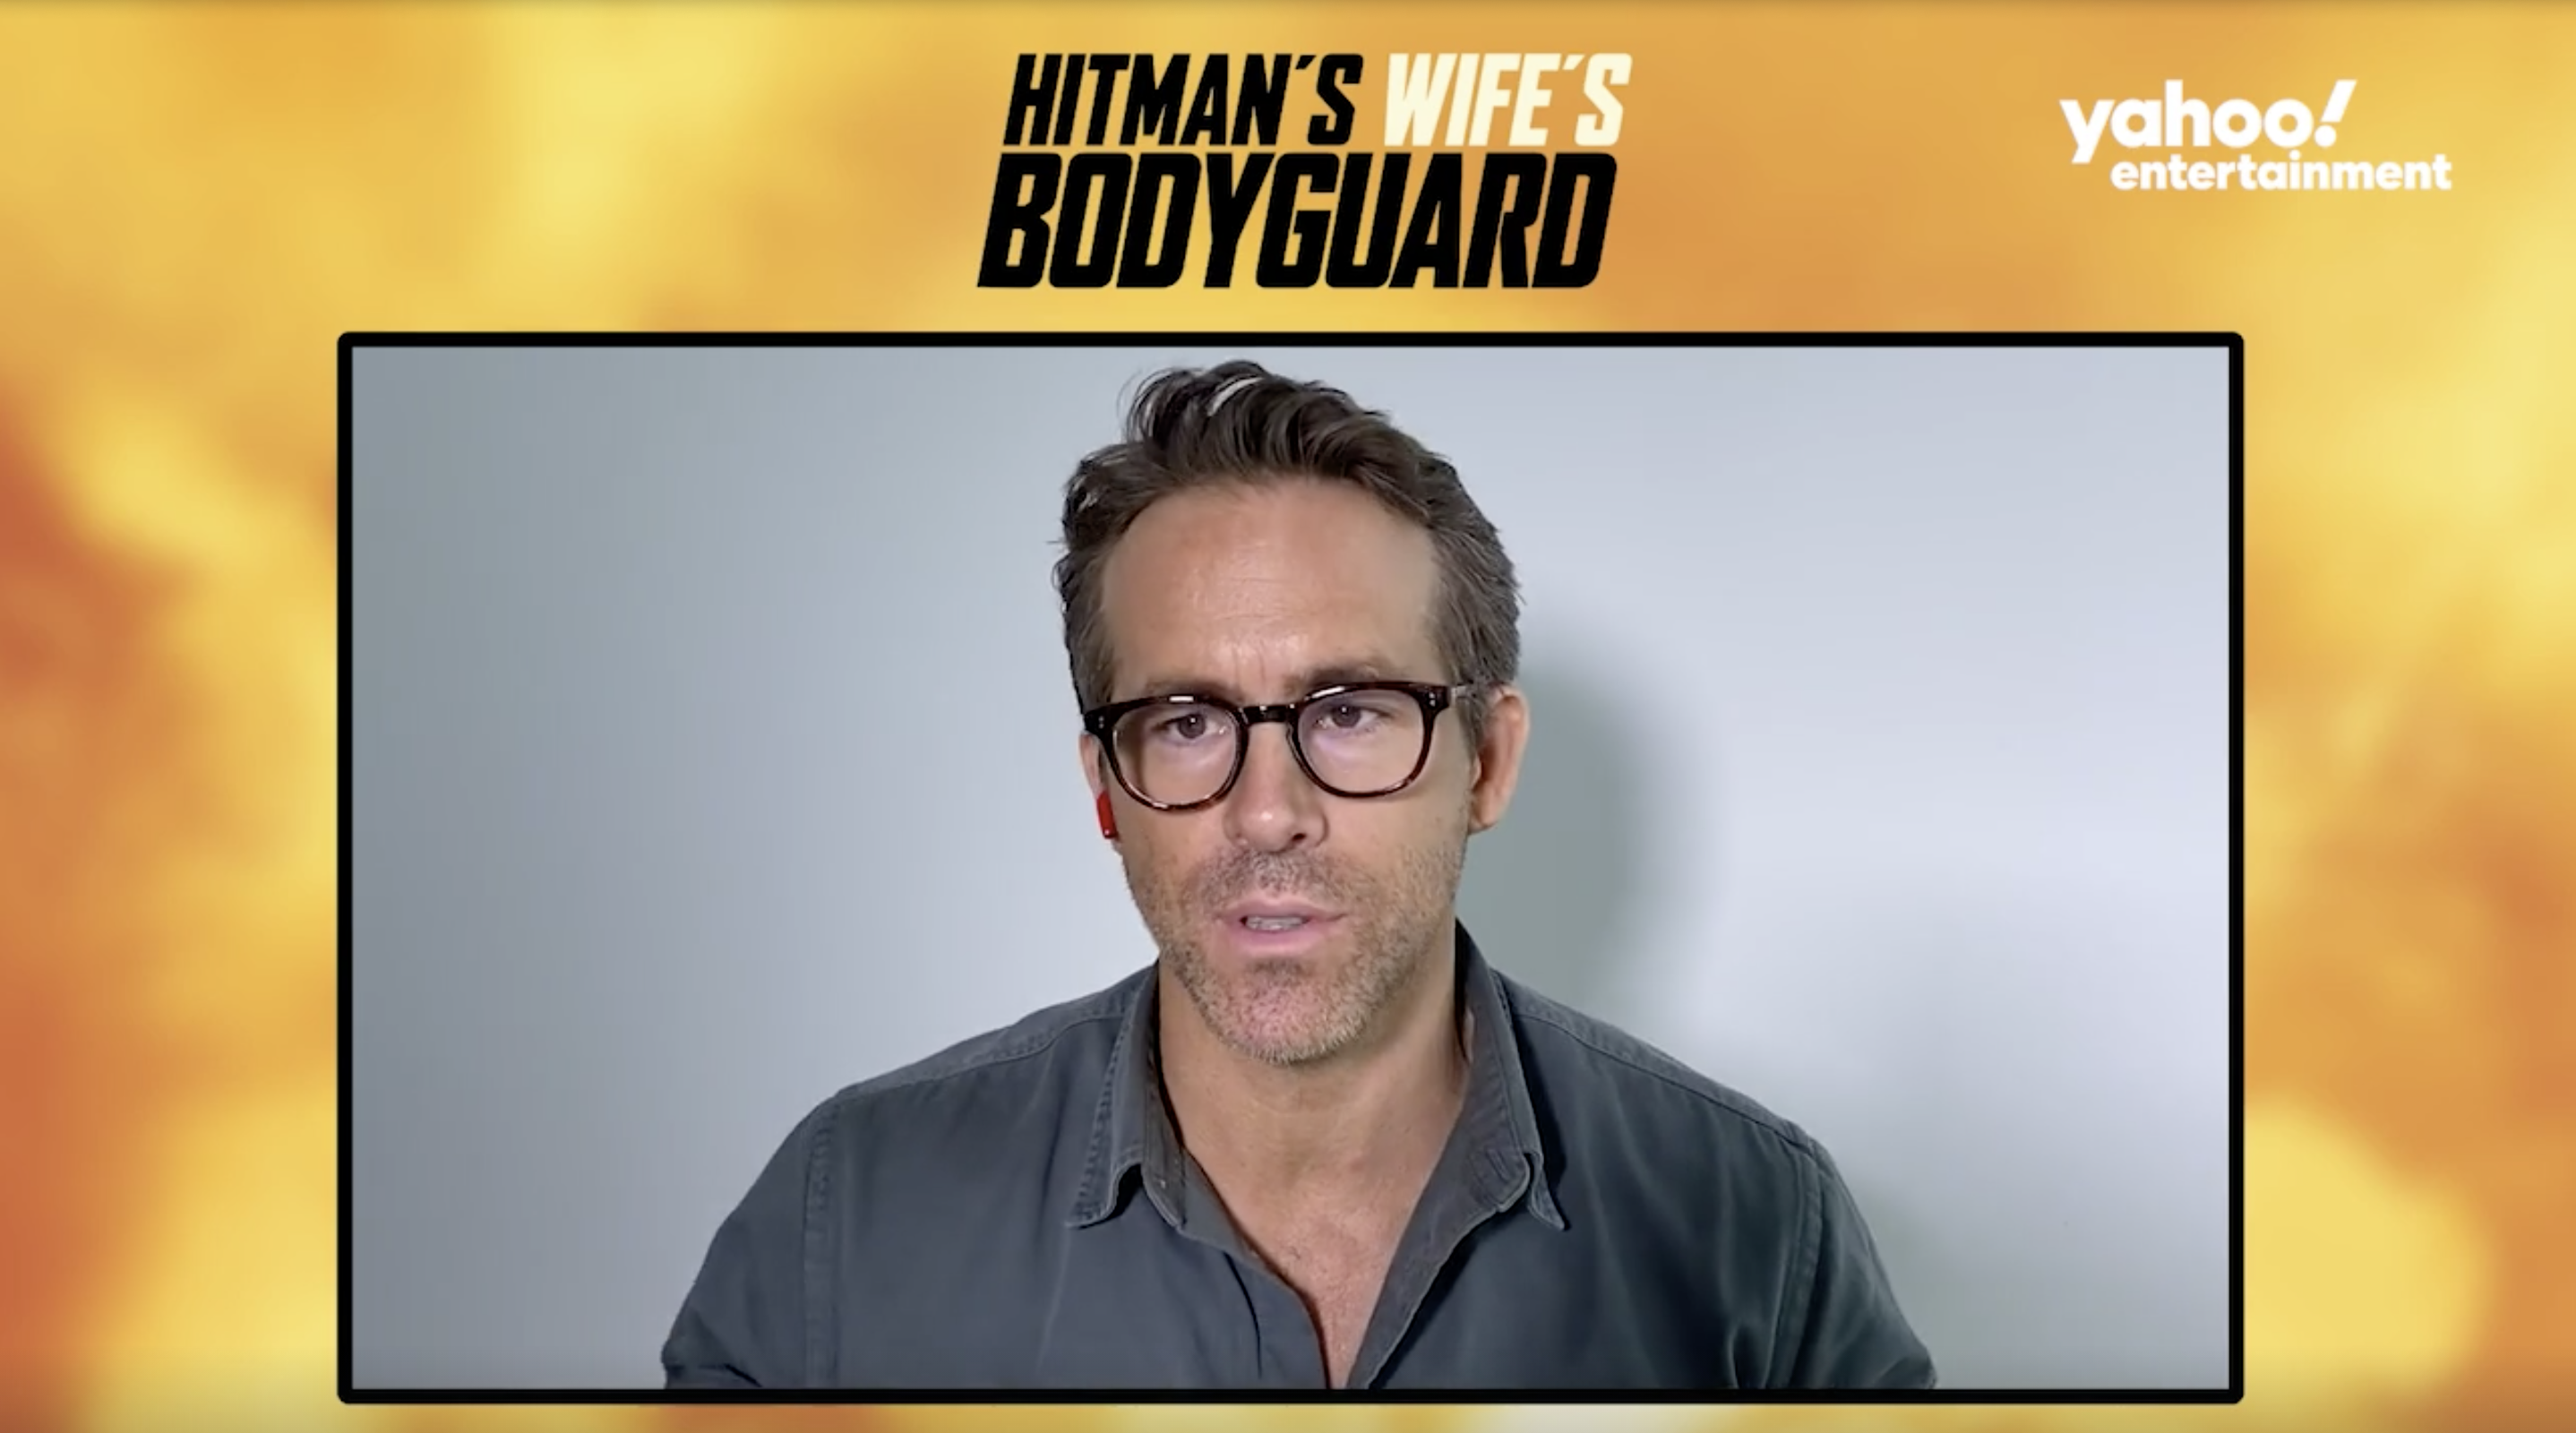 Ryan Reynolds speaks directly to camera in this Yahoo! Entertainment interview screenshot